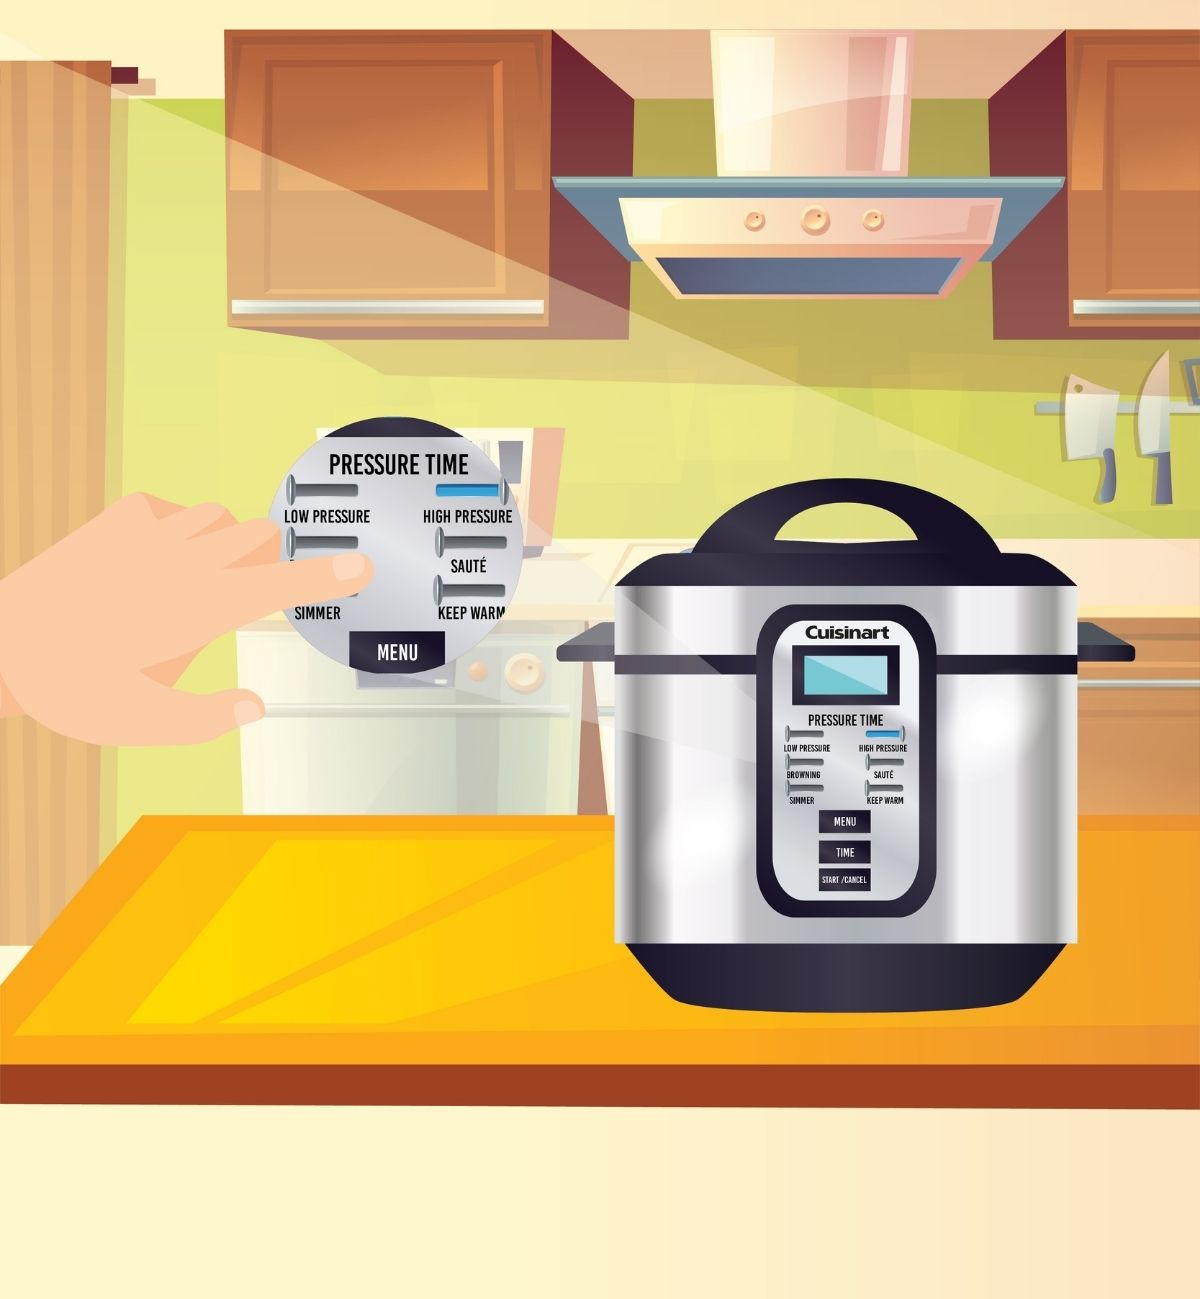 Select the appropriate pressure settingLow, High, Browning, Sauté, or Simmer.